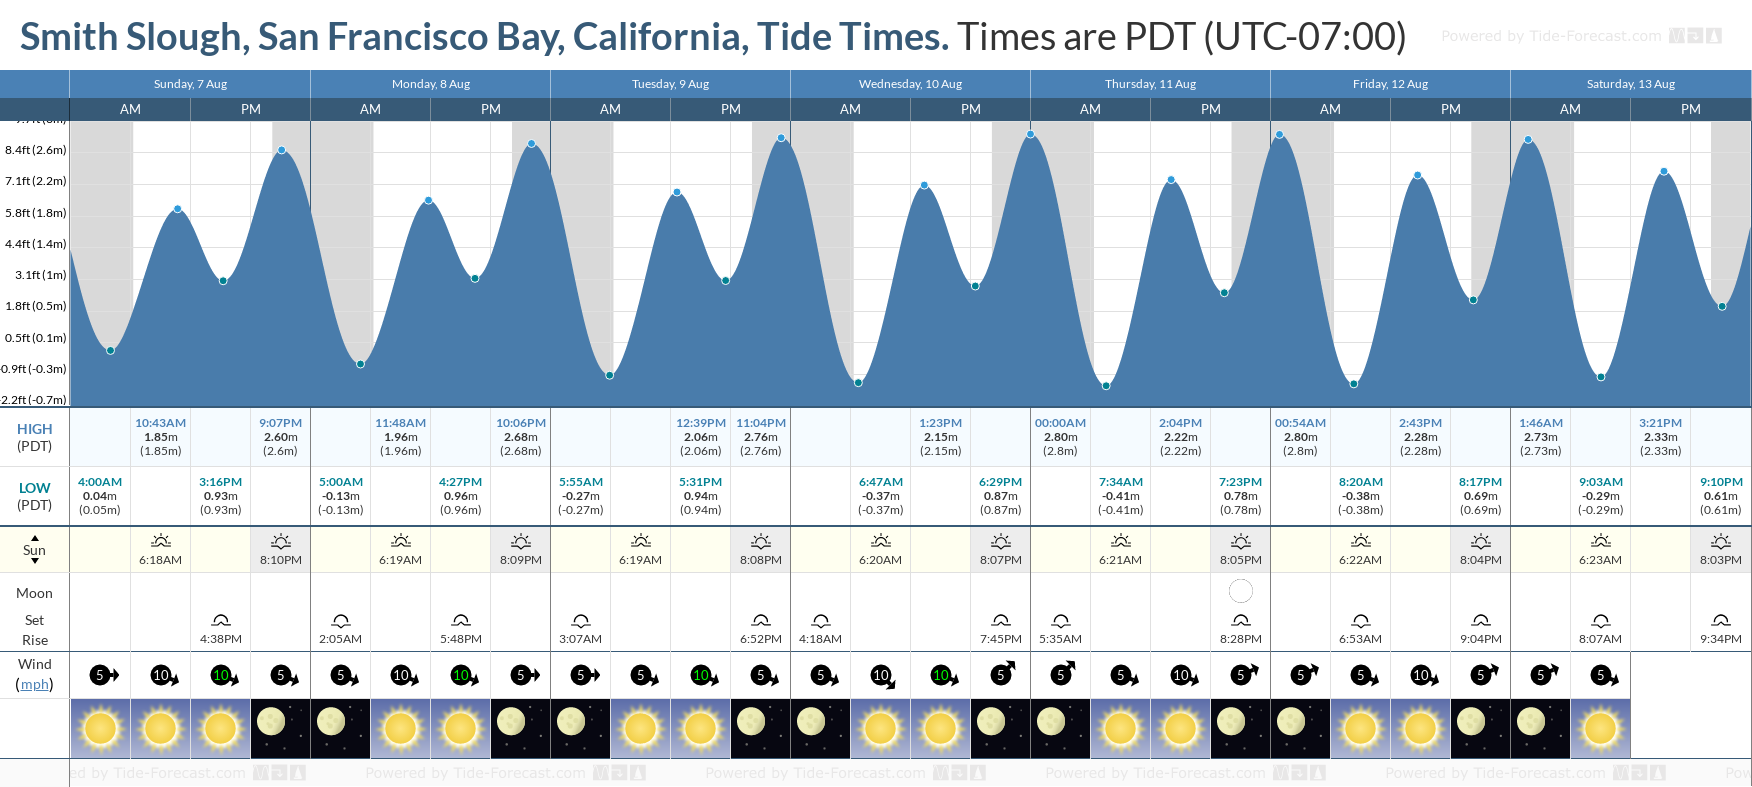 Smith Slough, San Francisco Bay, California Tide Chart including high and low tide tide times for the next 7 days